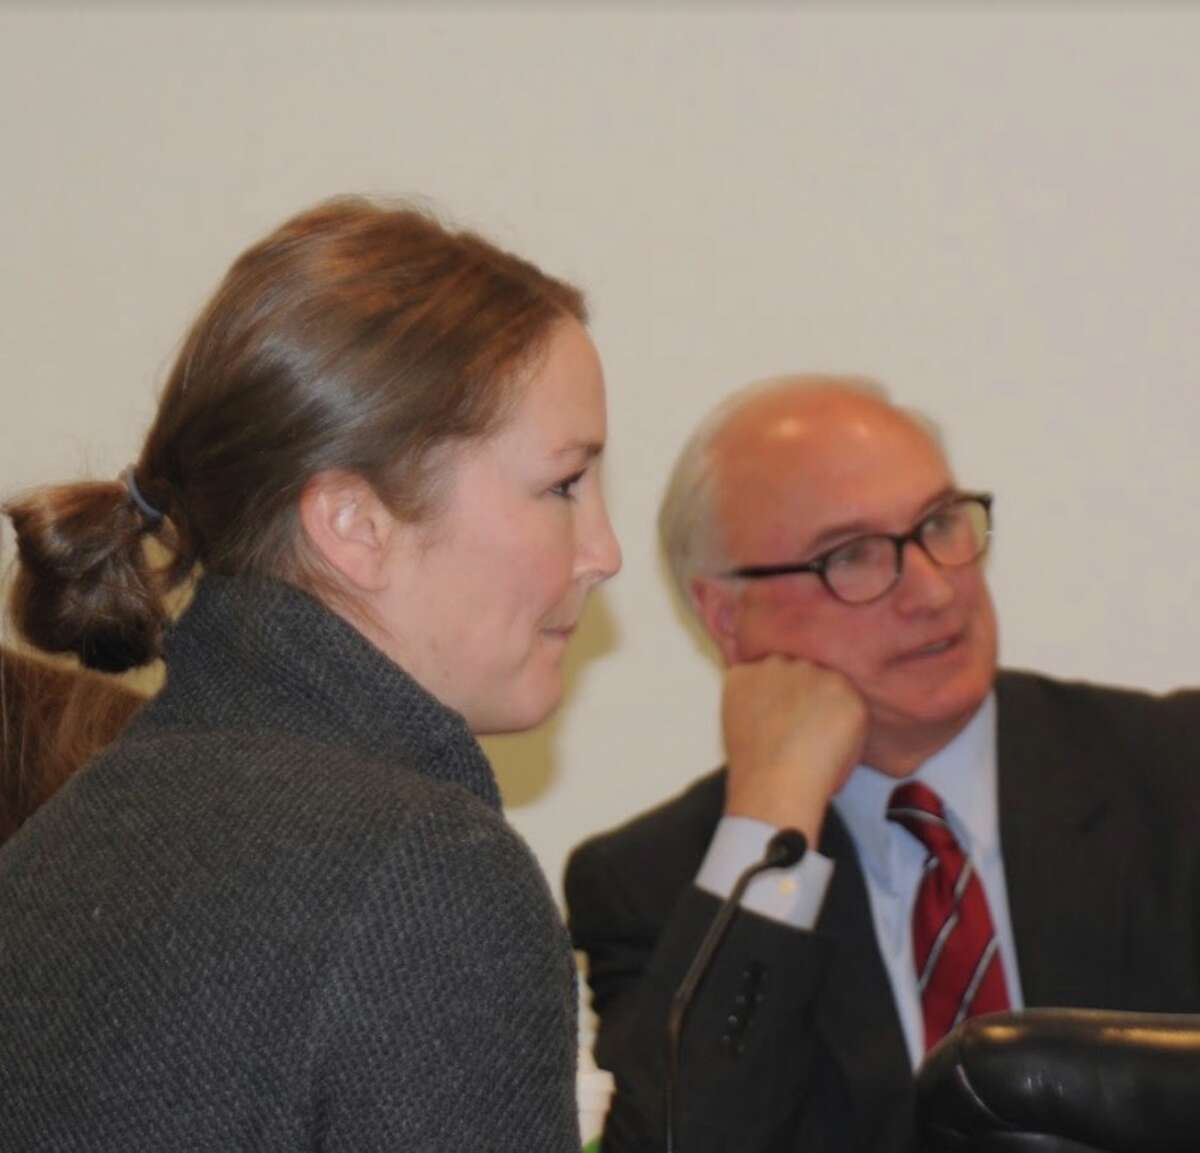 Erica Ippoliti was appointed the Prevention Council at the Nov. 28 selectmen's meeting. Behind is First Selectman Rudy Marconi. - Macklin Reid photo.